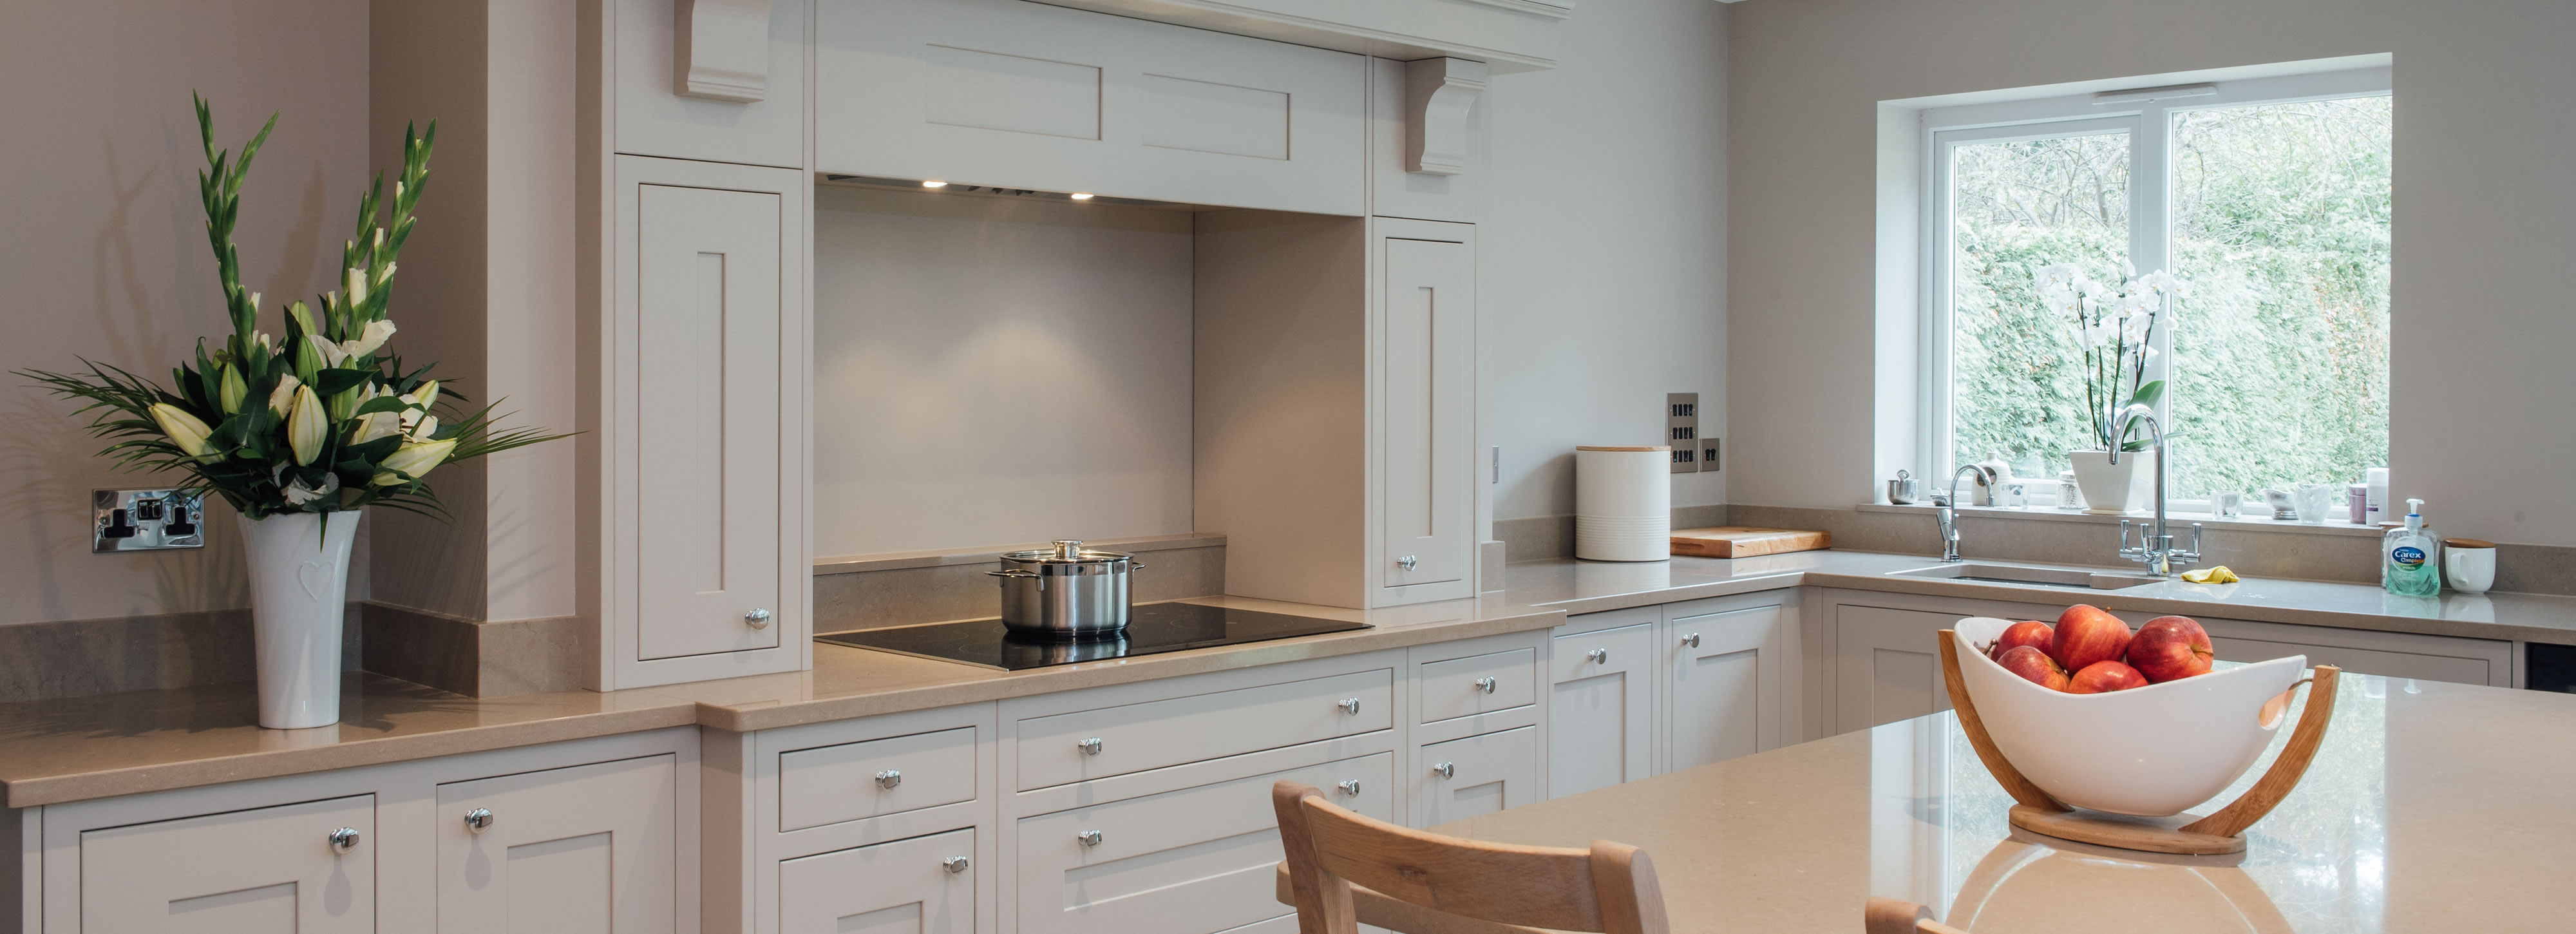 Classic kitchen design and installation surrey raycross for Classic kitchen